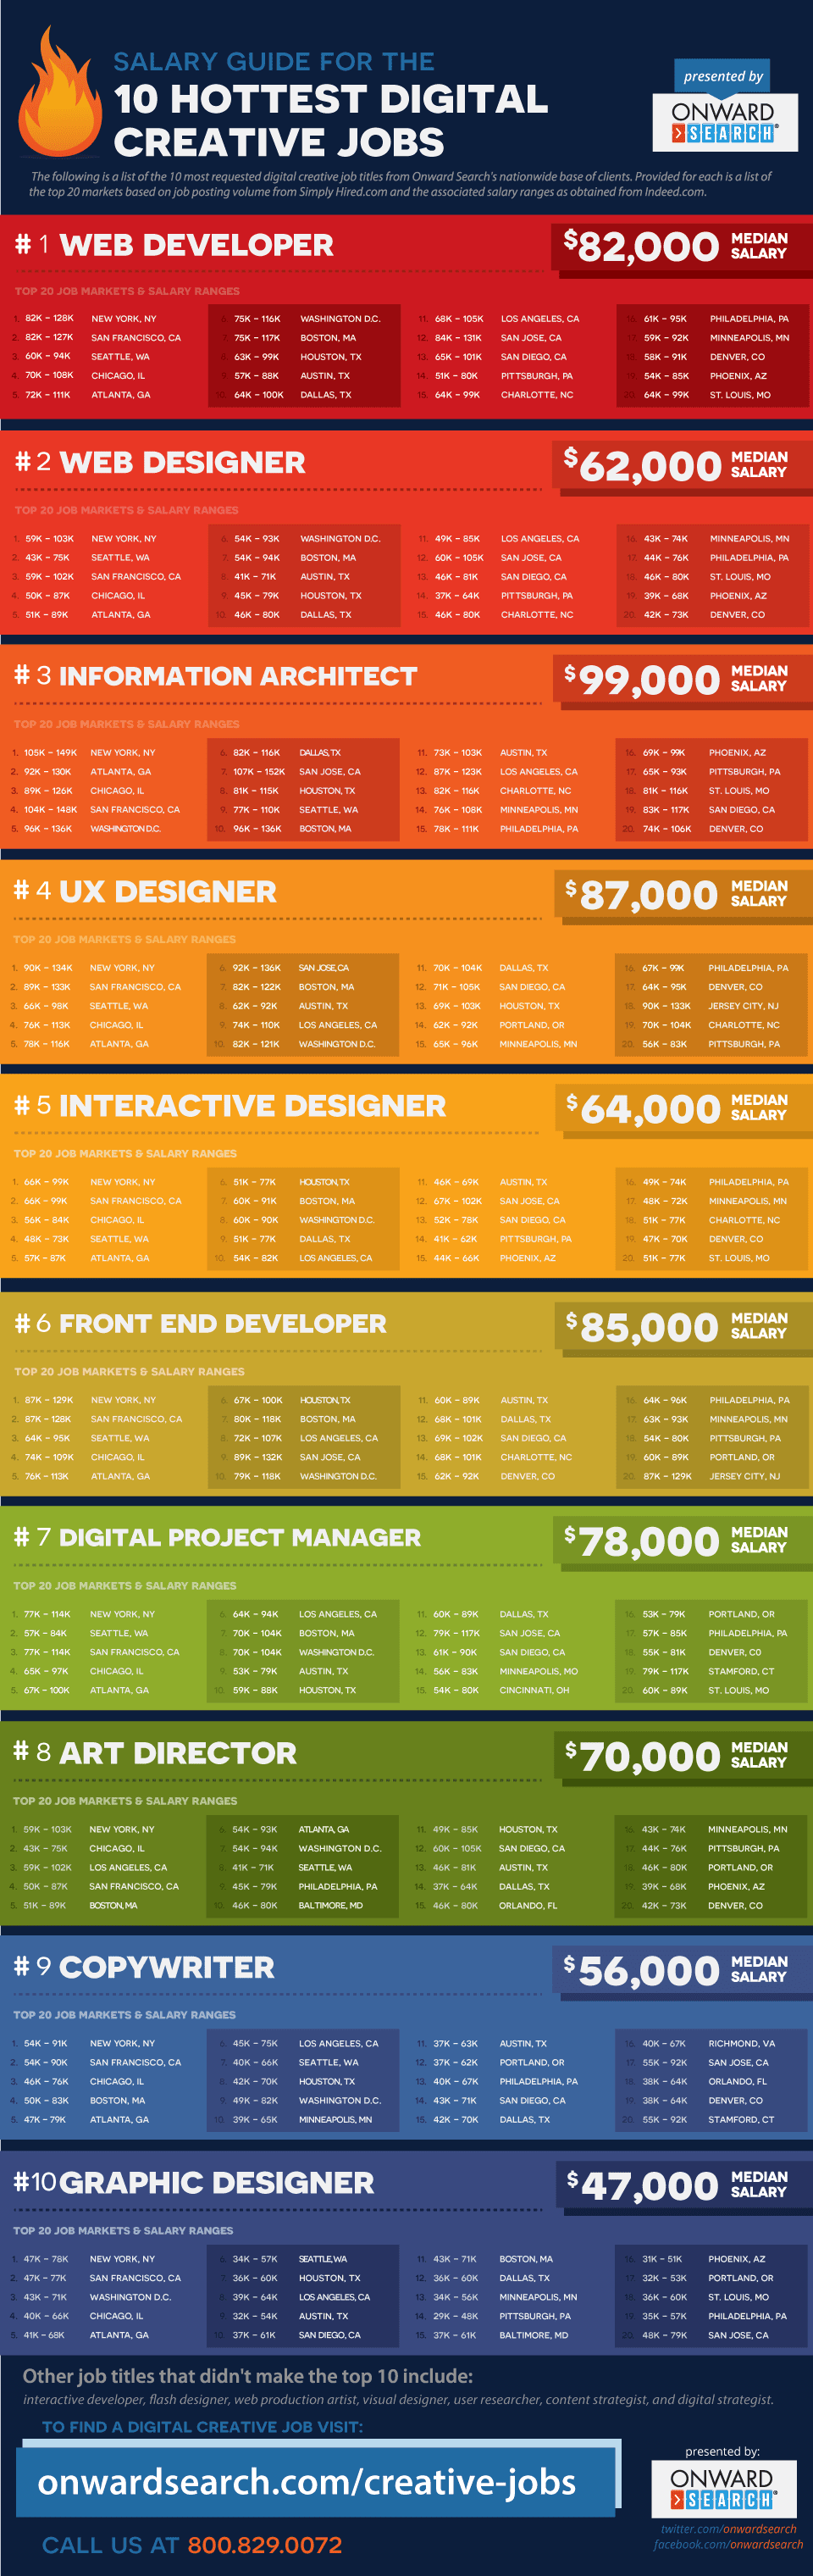 Digital Creative Jobs Salary Guide Salary Guide for the 10 Hottest Digital Creative Jobs [Infographic]